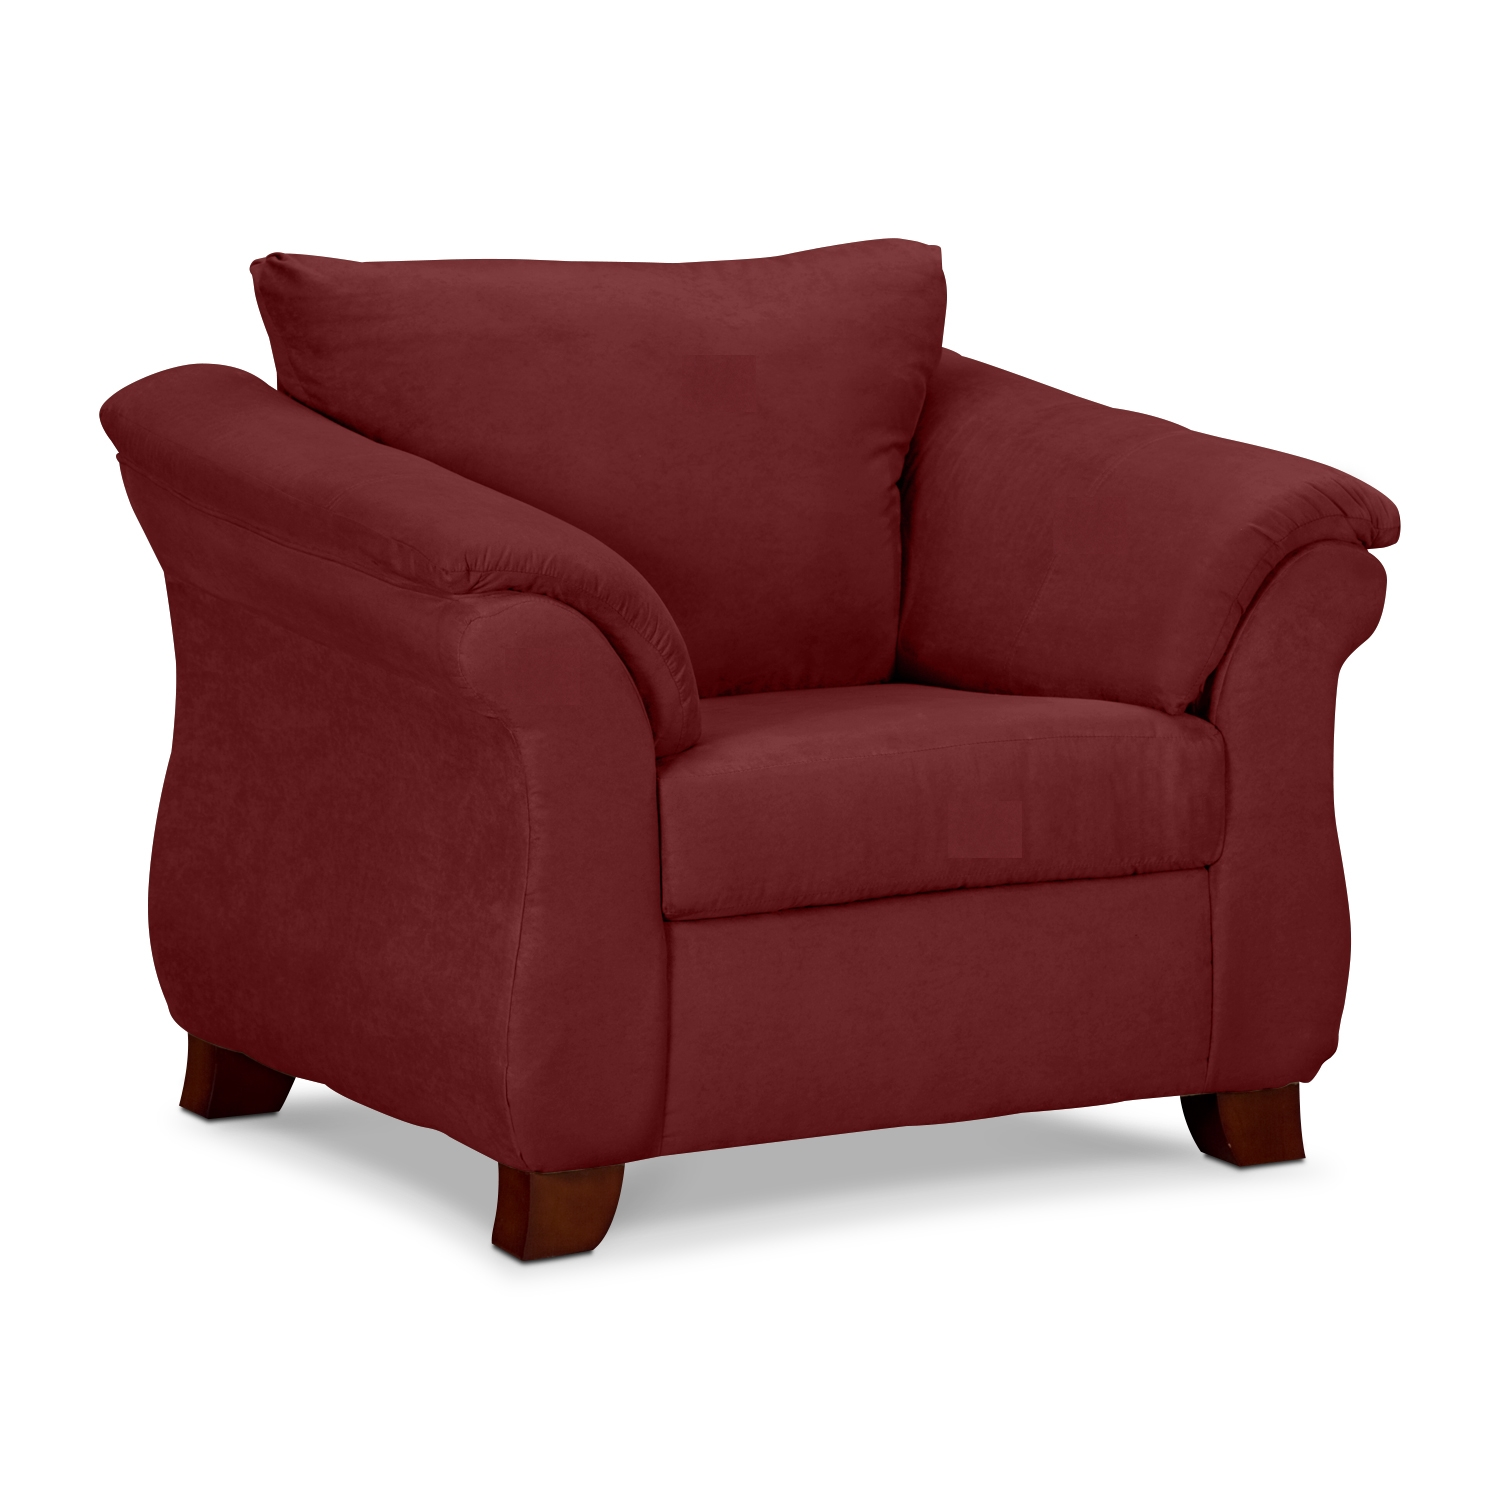 Pictures of living room furniture chairs adrian red chair value city furniture cphxaky